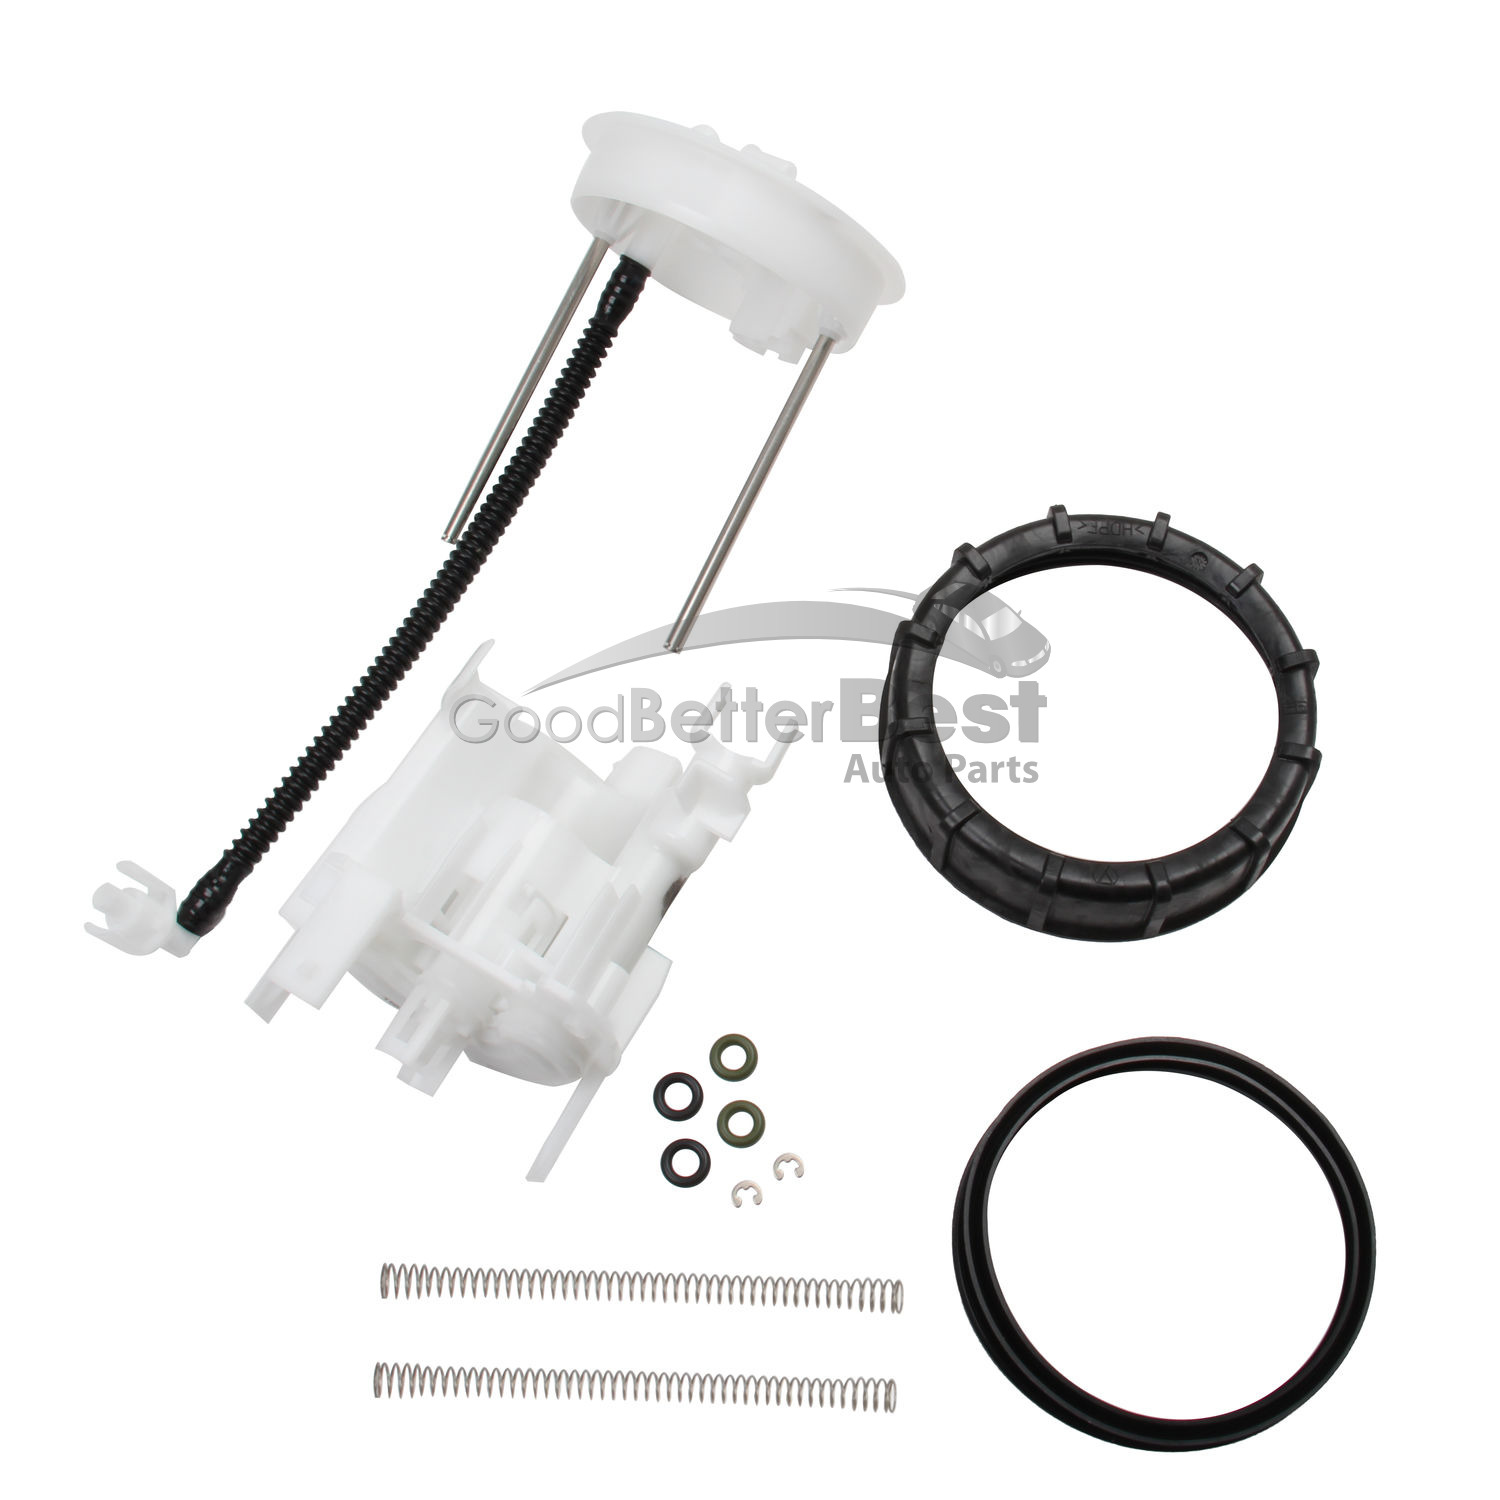 Details about One New Genuine Fuel Filter 17048SEPA00 TL on